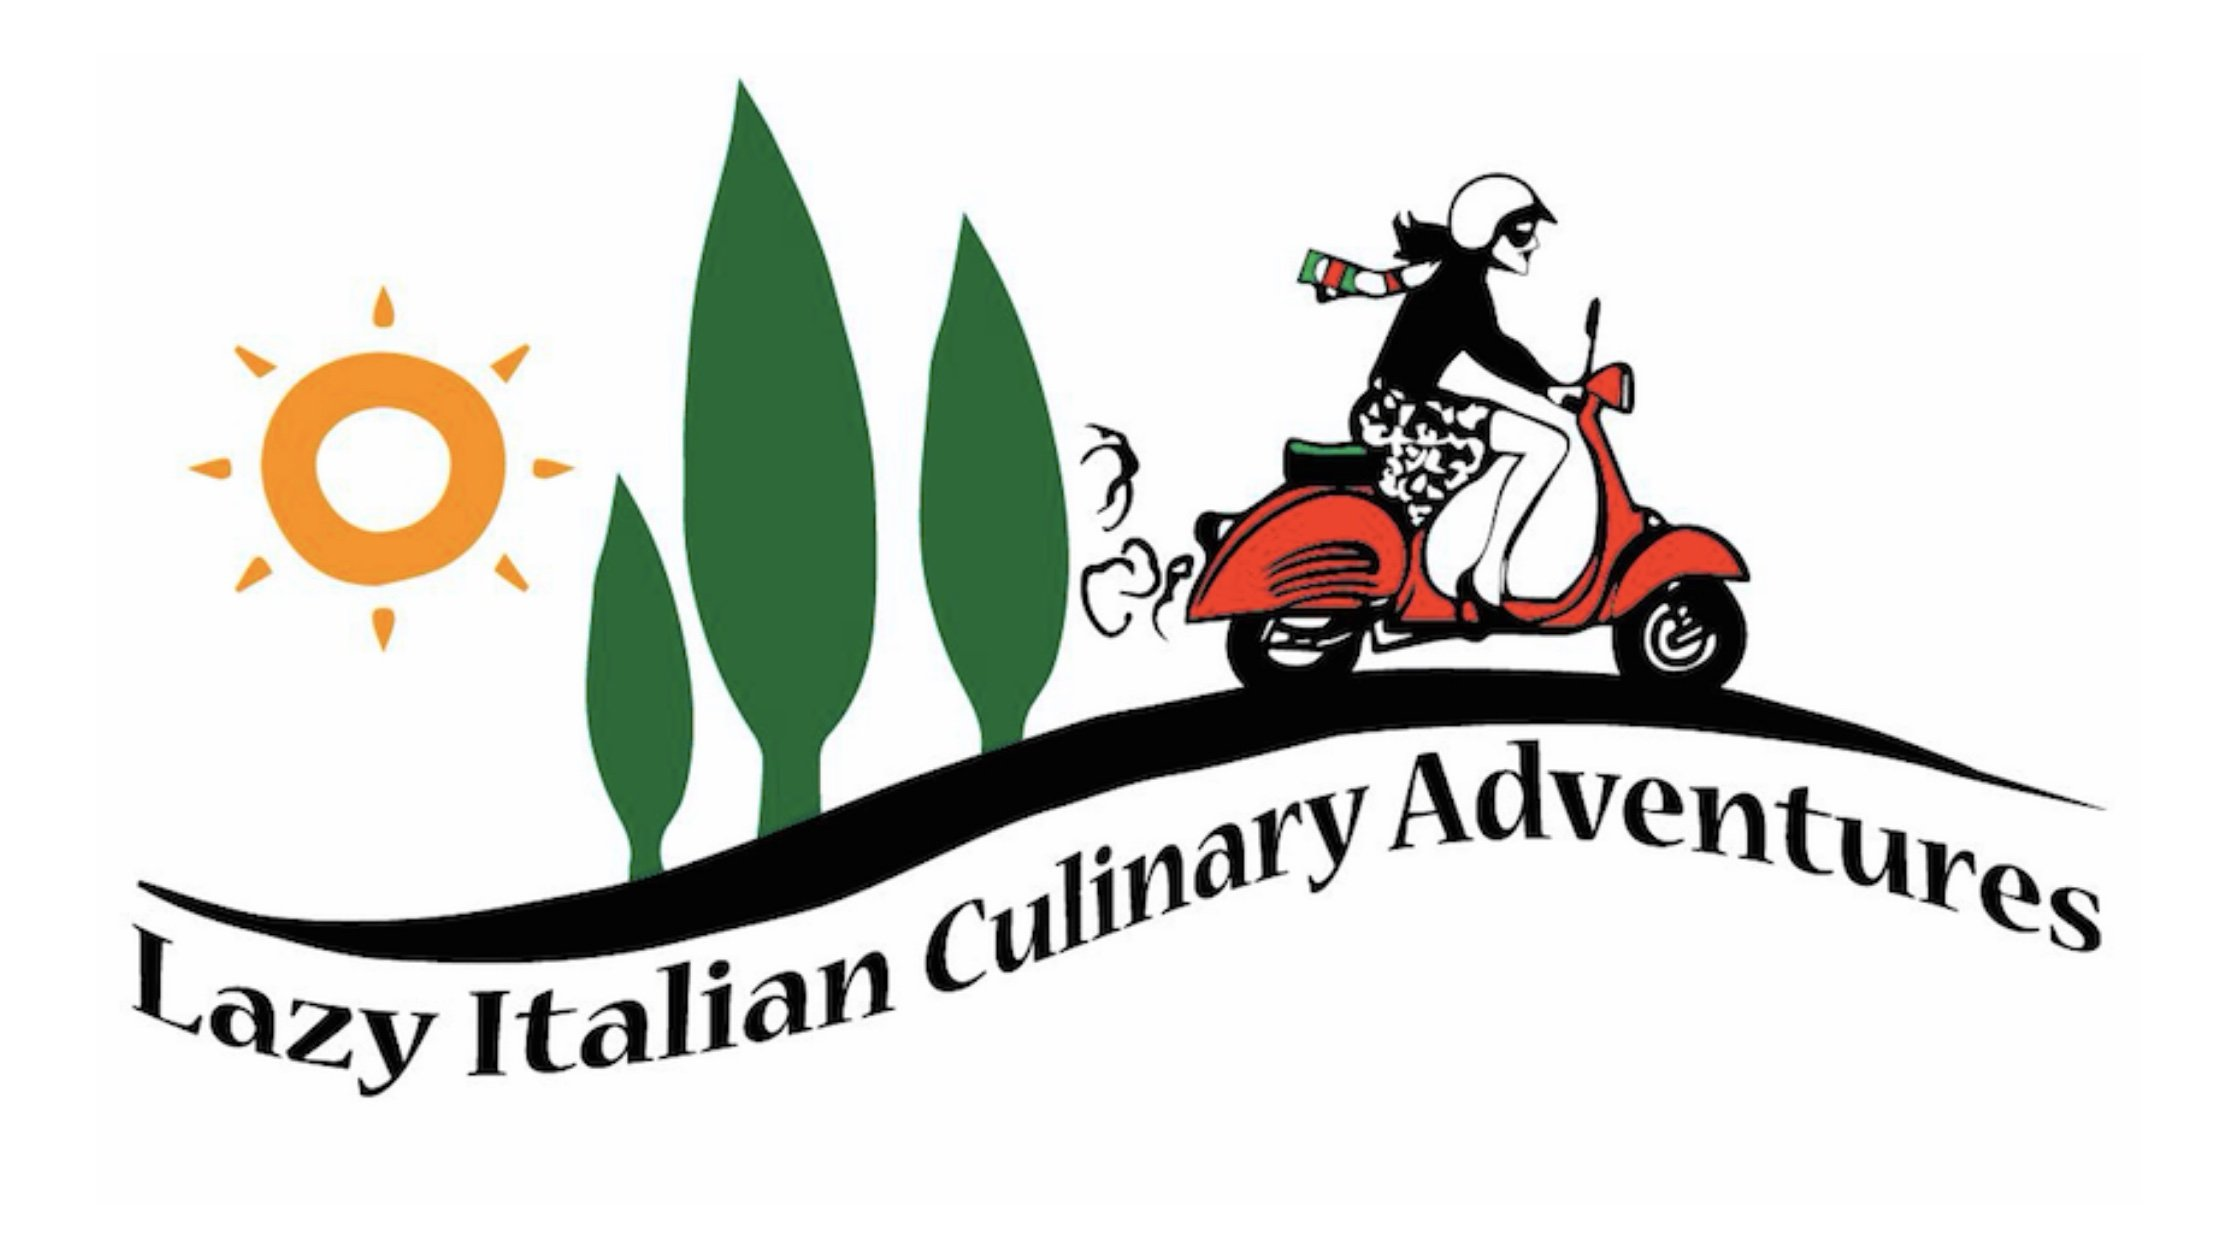 Q&A with Francesca Montillo of Lazy Italian Culinary Adventures